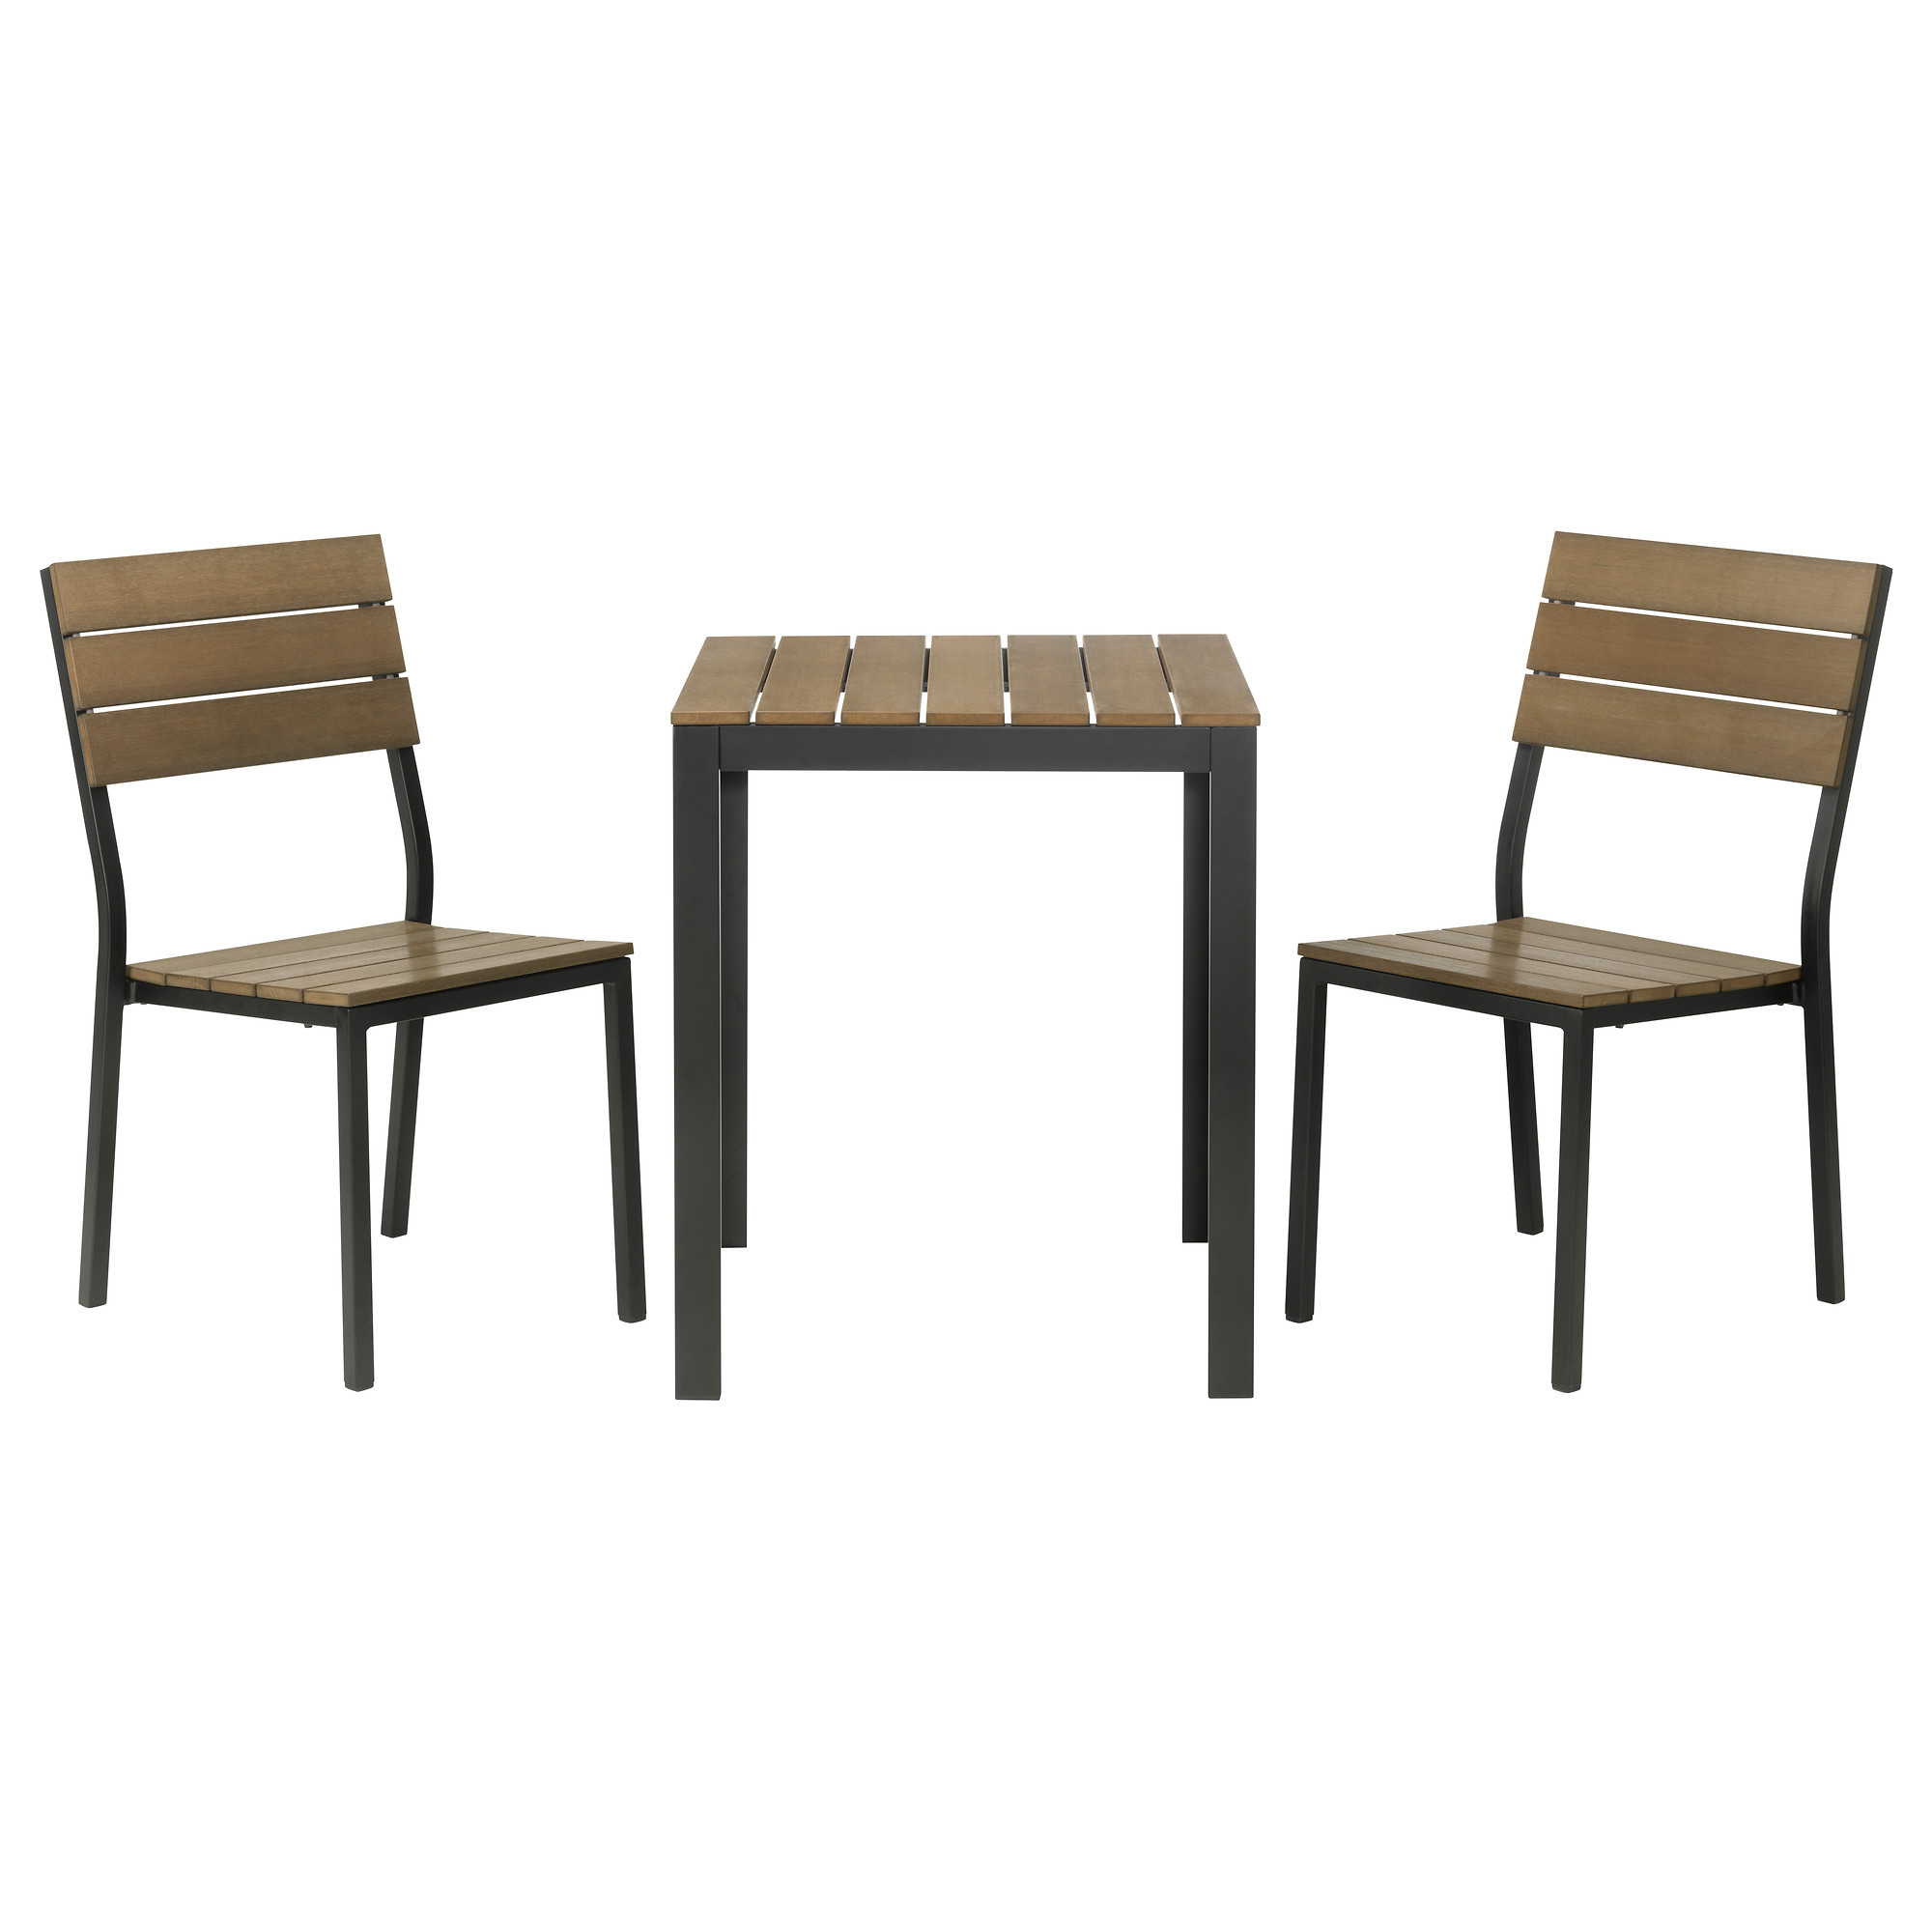 ikea furniture sets. Simple Wooden Ikea Bistro Set Furniture Sets S  sc 1 th 225 : two seat dining table set - pezcame.com